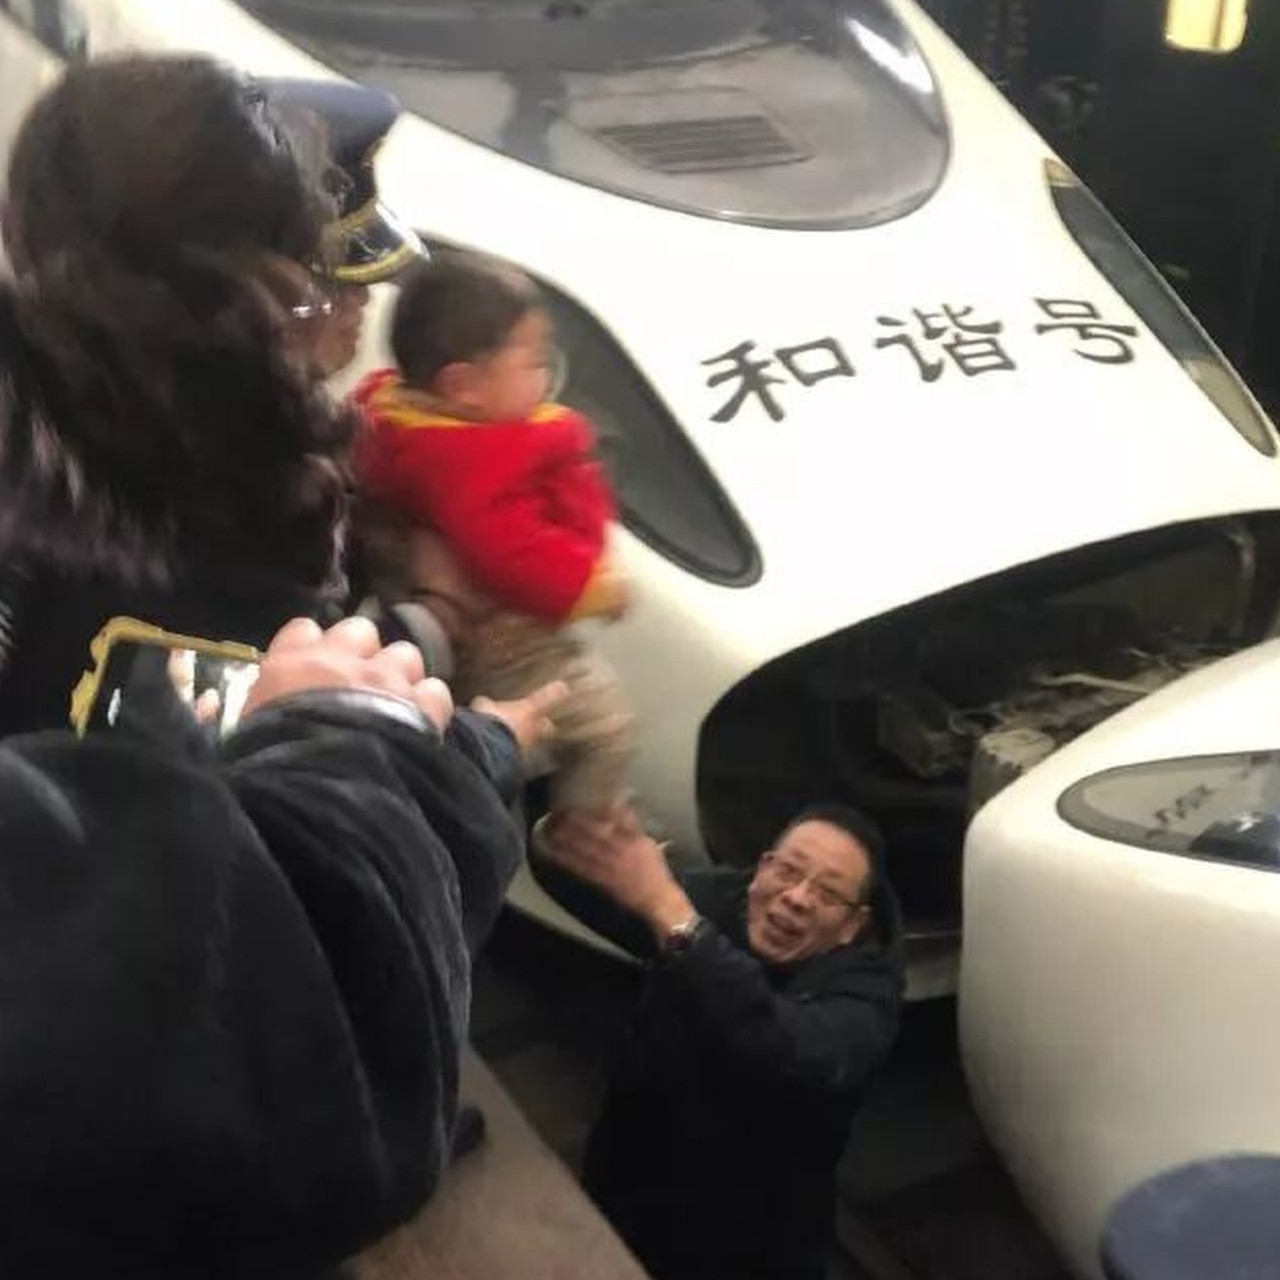 Chinese boy, 3, has lucky escape after falling onto high-speed train